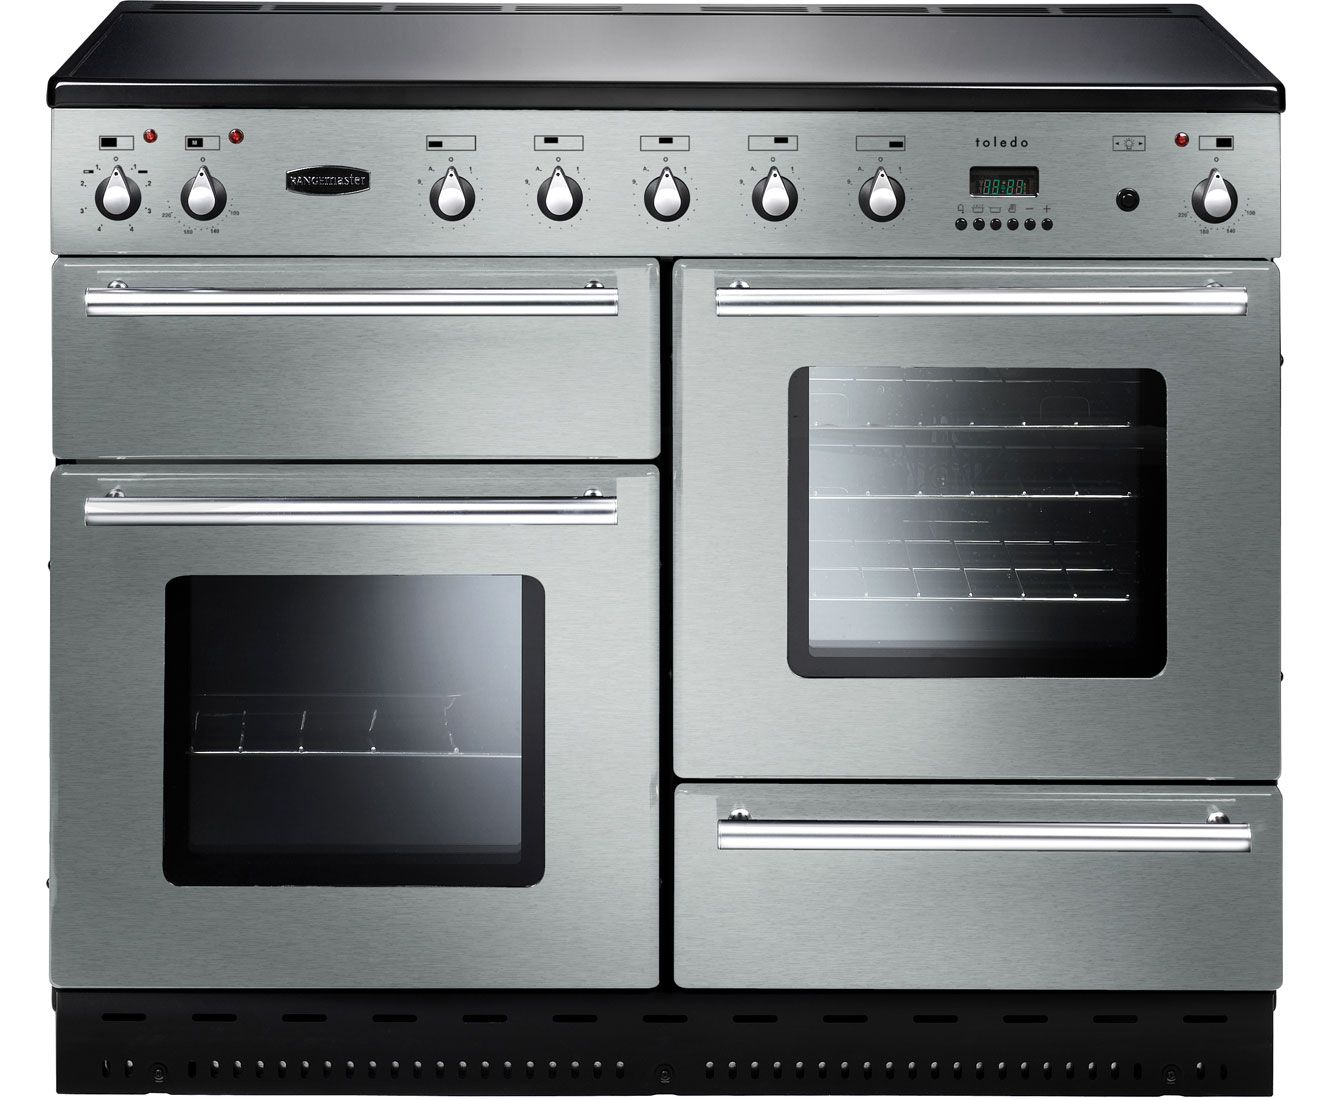 Rangemaster Toledo 110 Induction Tols110eiss Freestanding Electric Range Cooker Stainless Steel Electric Range Cookers Dual Fuel Range Cookers Range Cooker